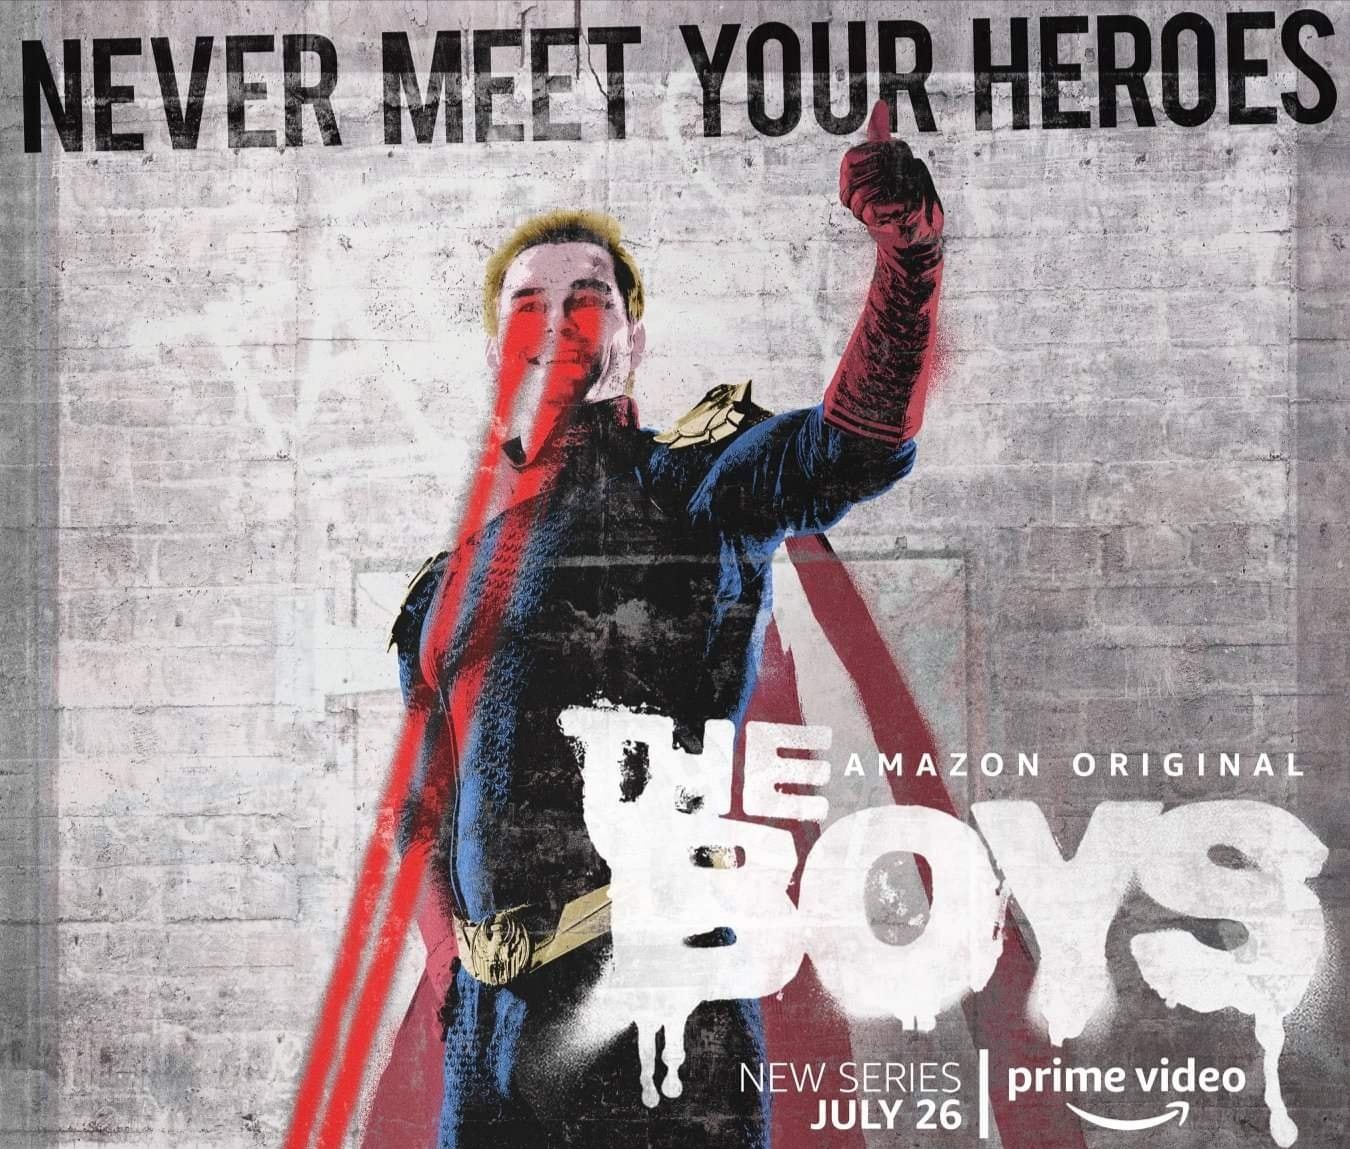 Superhero-centric Posters For Amazon's The Boys